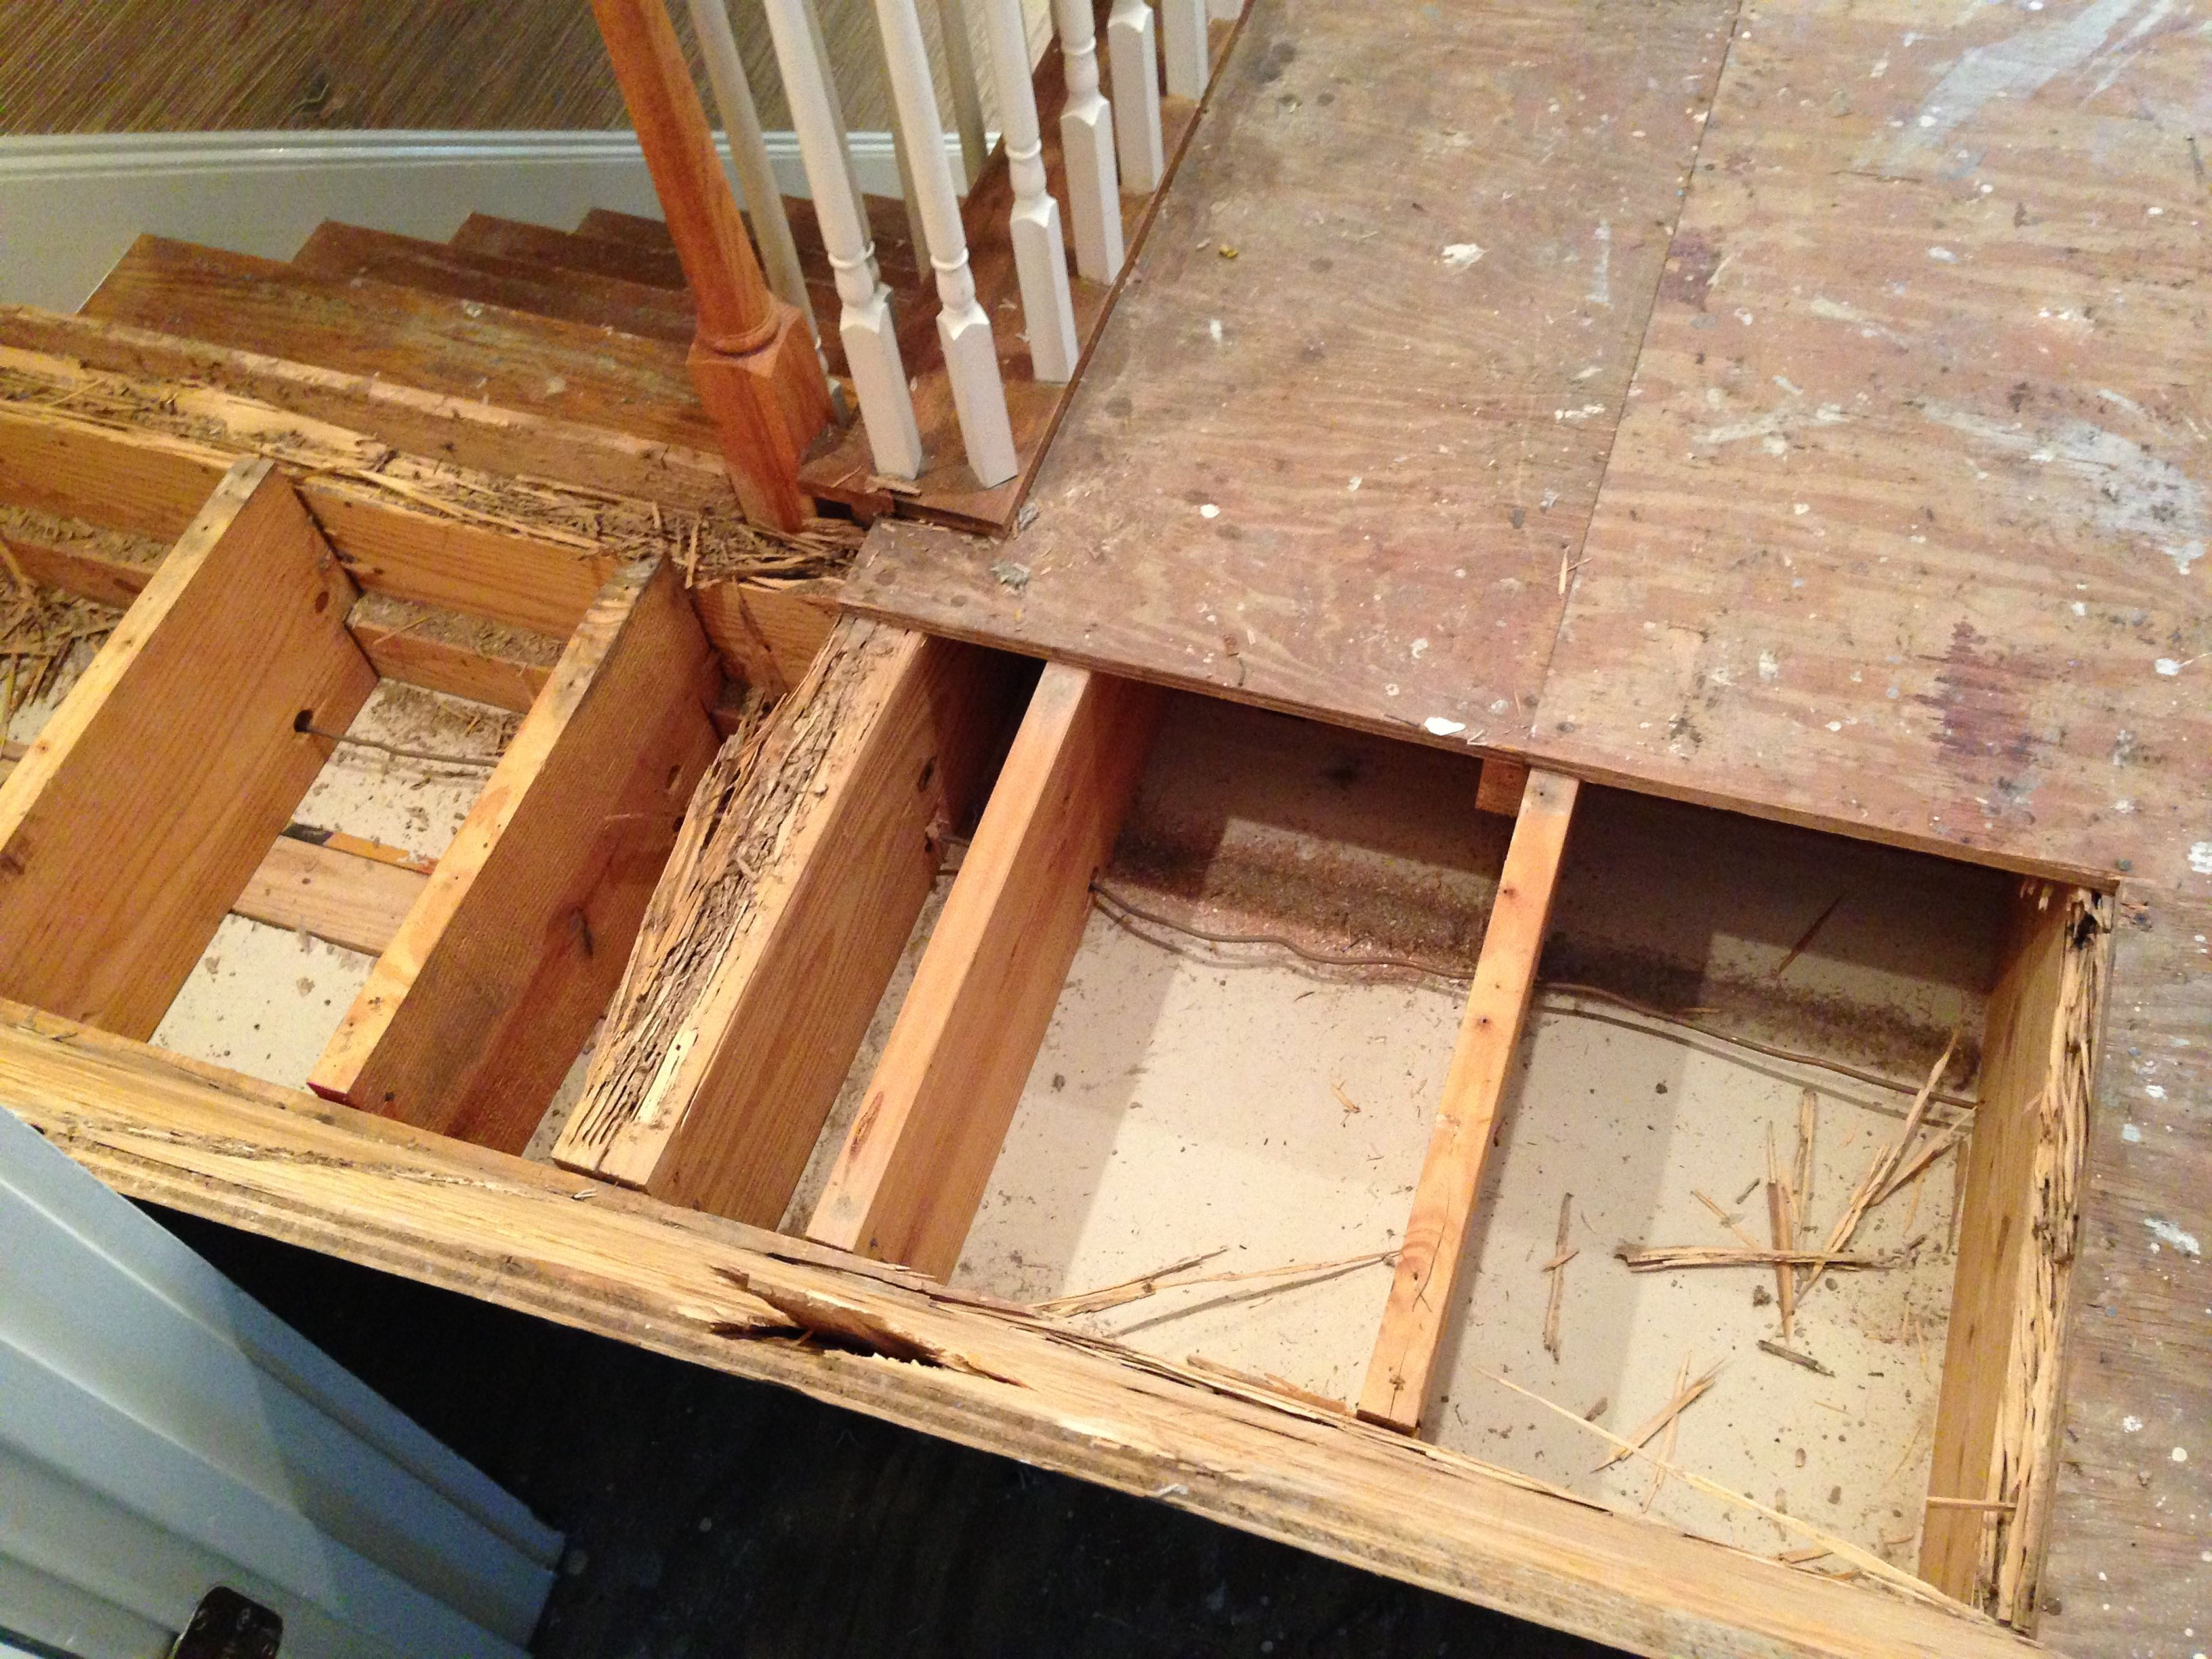 This subflooring had termite damage underneath it. The damaged wood had to be replaced for the integrity of the new floors being installed.